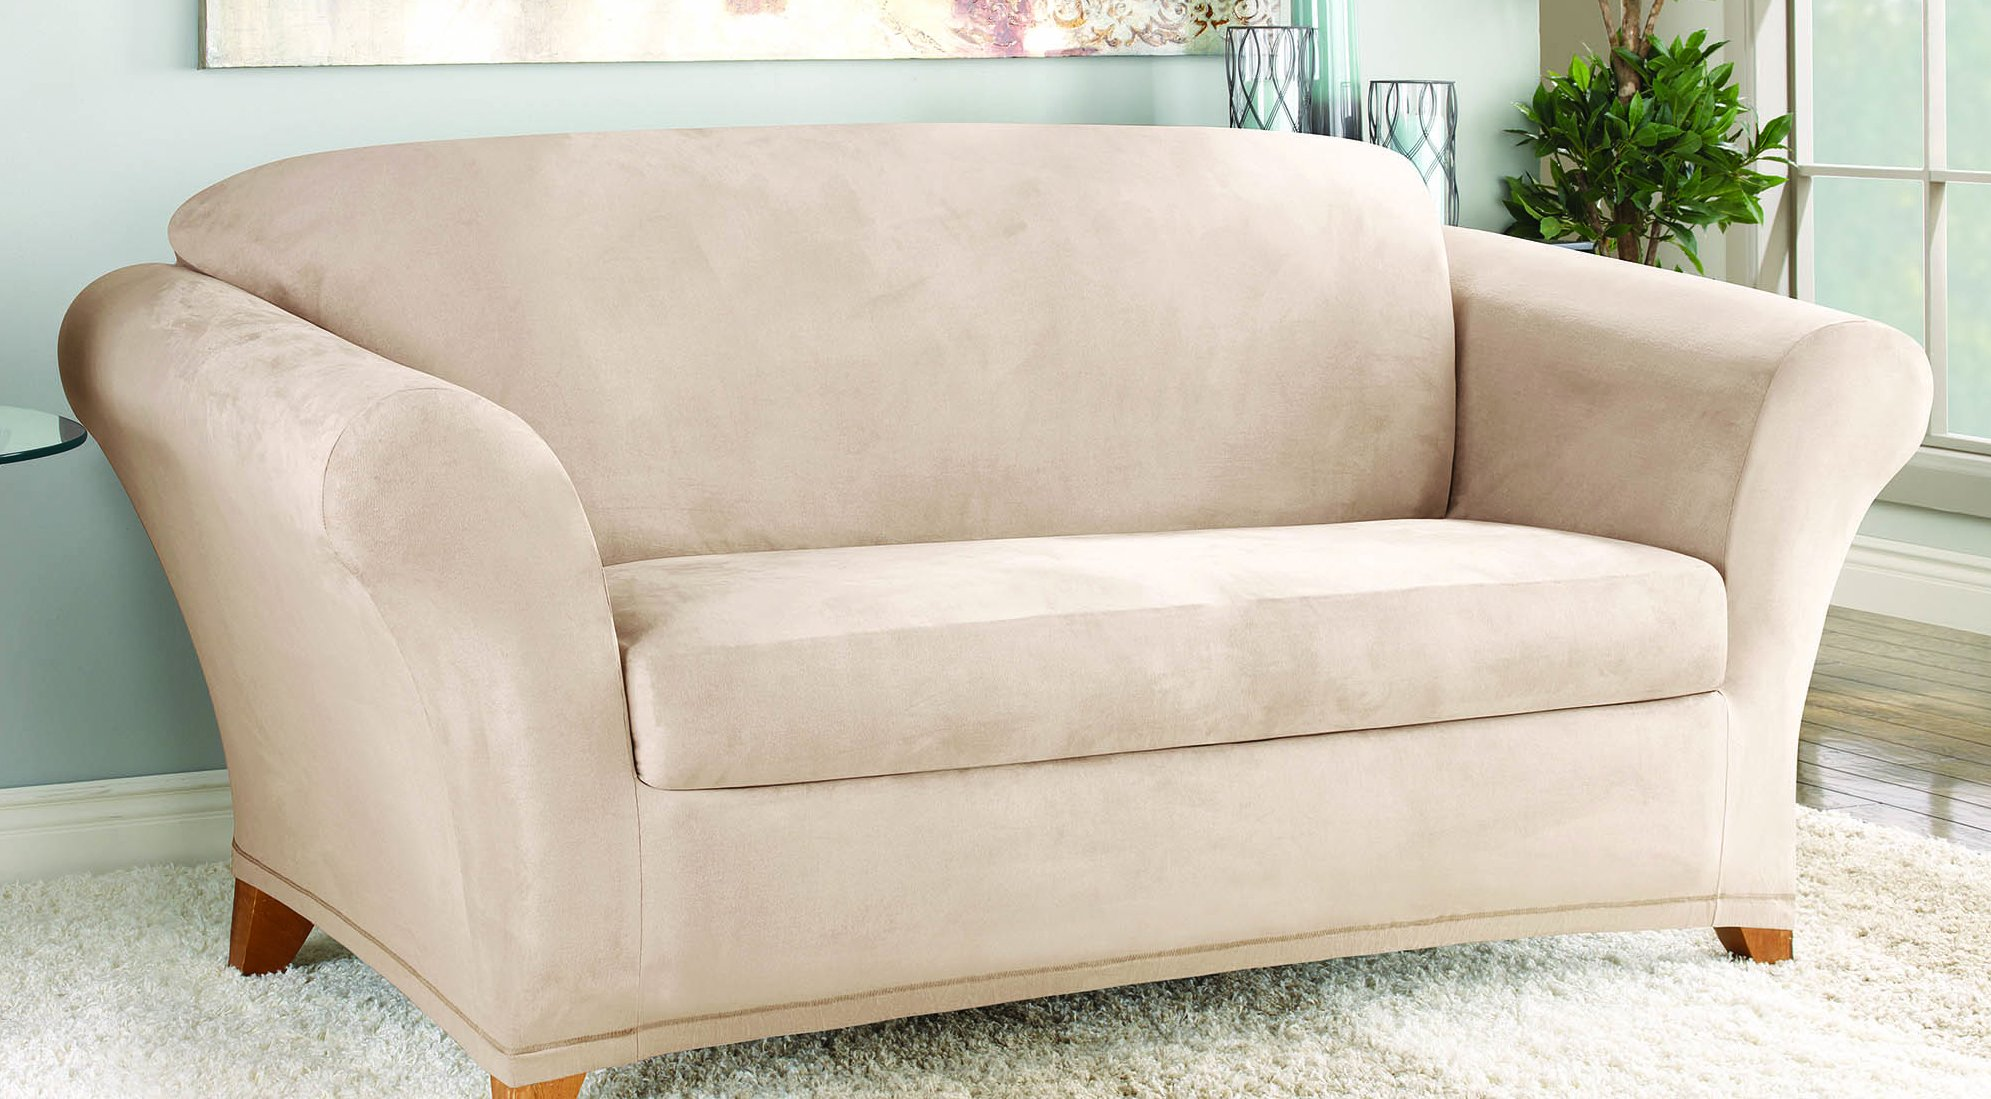 Sure Fit Stretch Suede - Loveseat Slipcover  - Taupe (SF35544)